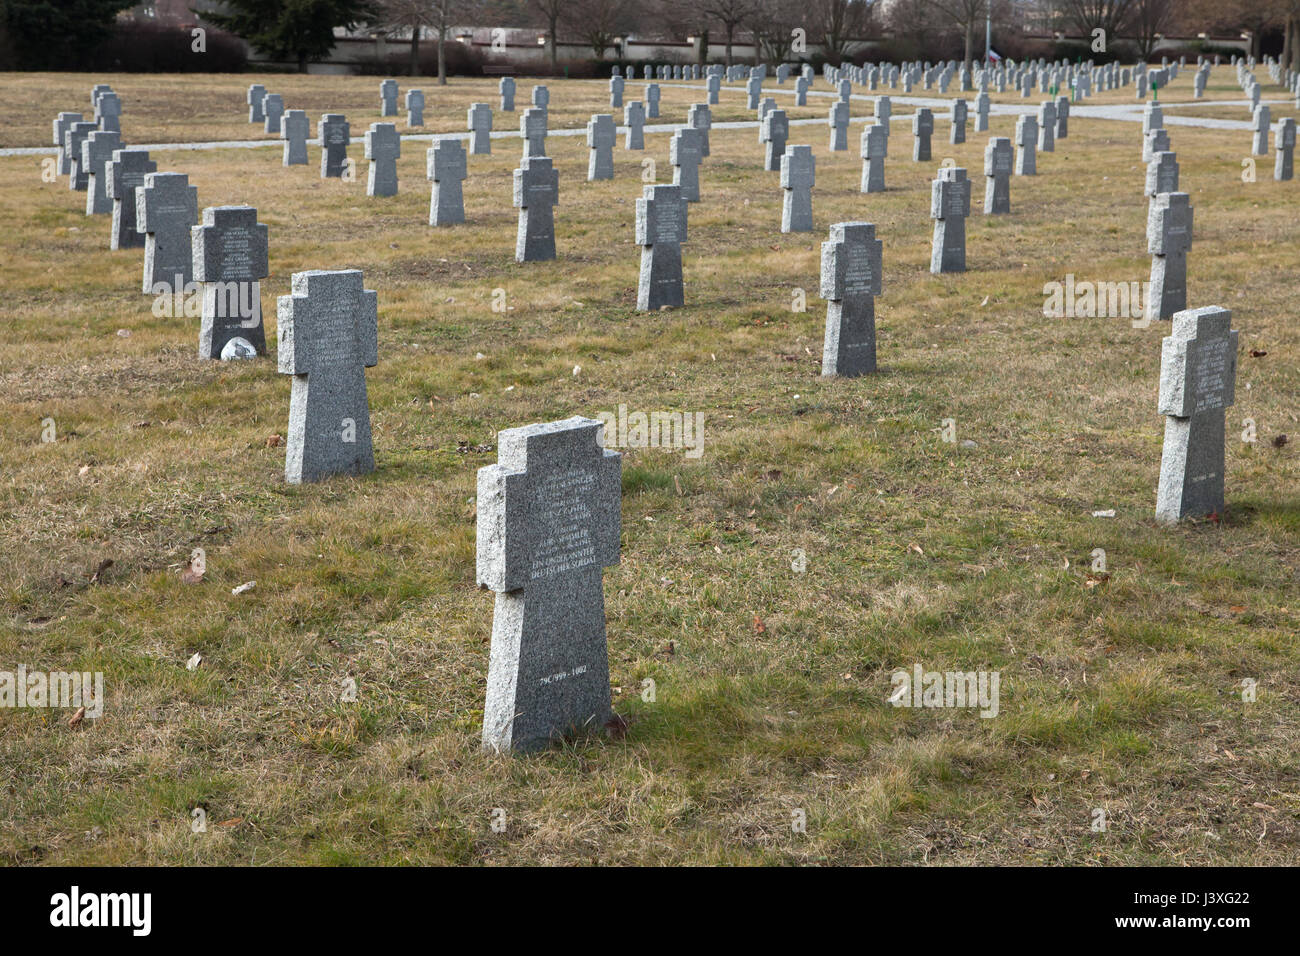 Graves of German Nazi soldiers on the ground of the German War Memorial at the Central Cemetery in Brno, Czech Republic. - Stock Image